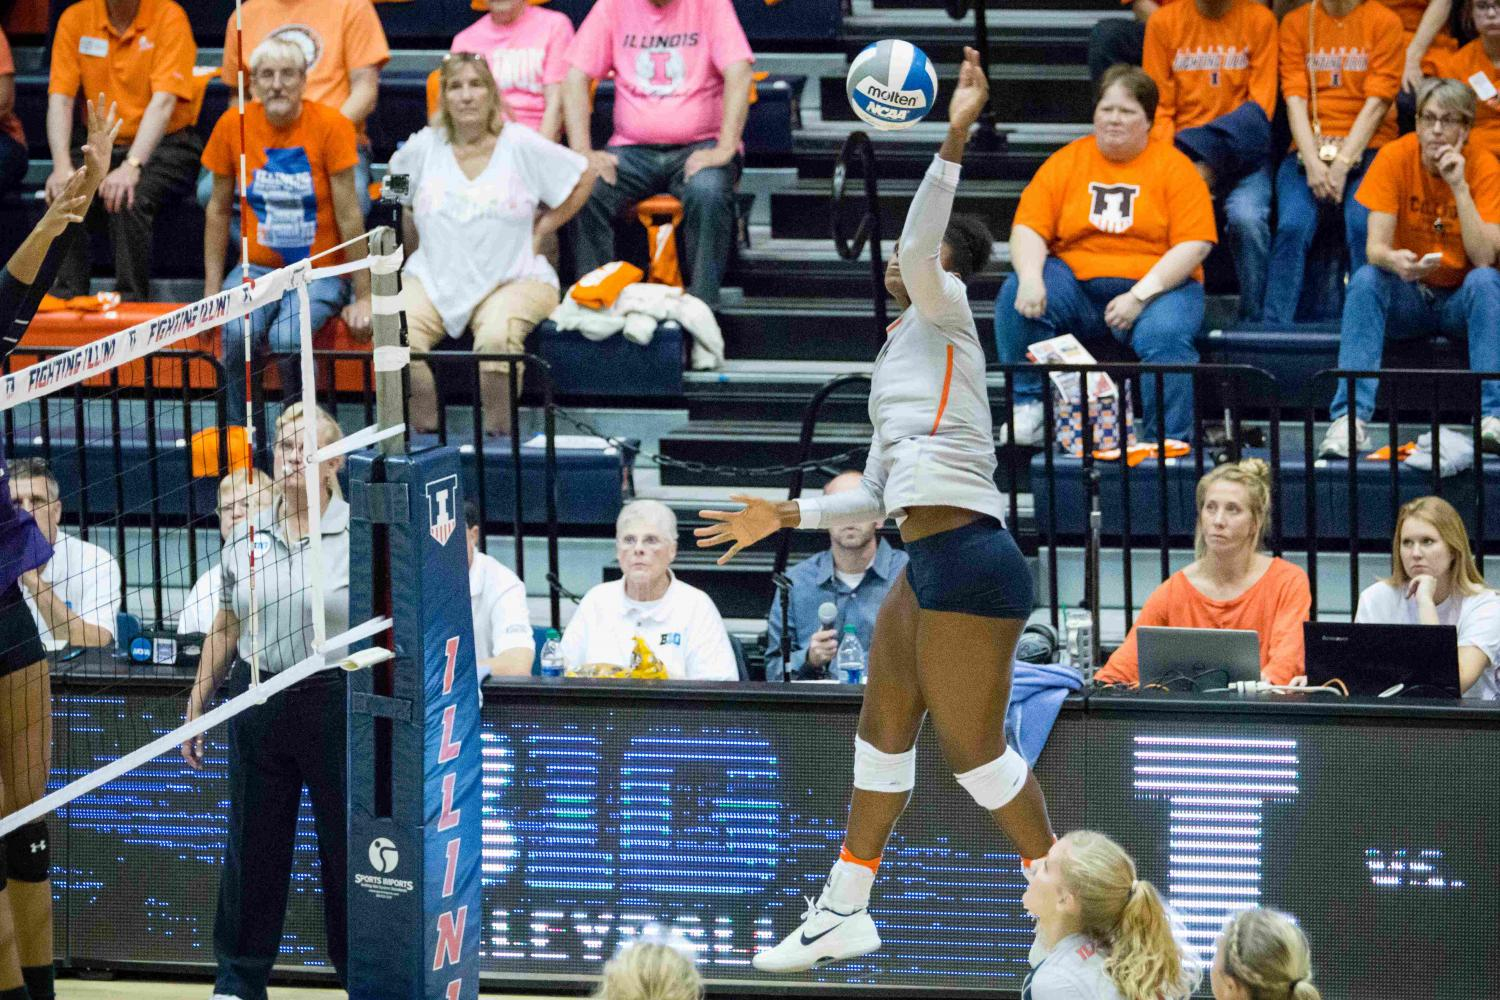 Illinois%E2%80%99+Naya+Crittenden+recorded+235+kills+in+the+2016+regular+season.+Crittenden+spent+her+first+two+collegiate+two+seasons+at+Oregon%2C+where+misconduct+forced+her+to+transfer.